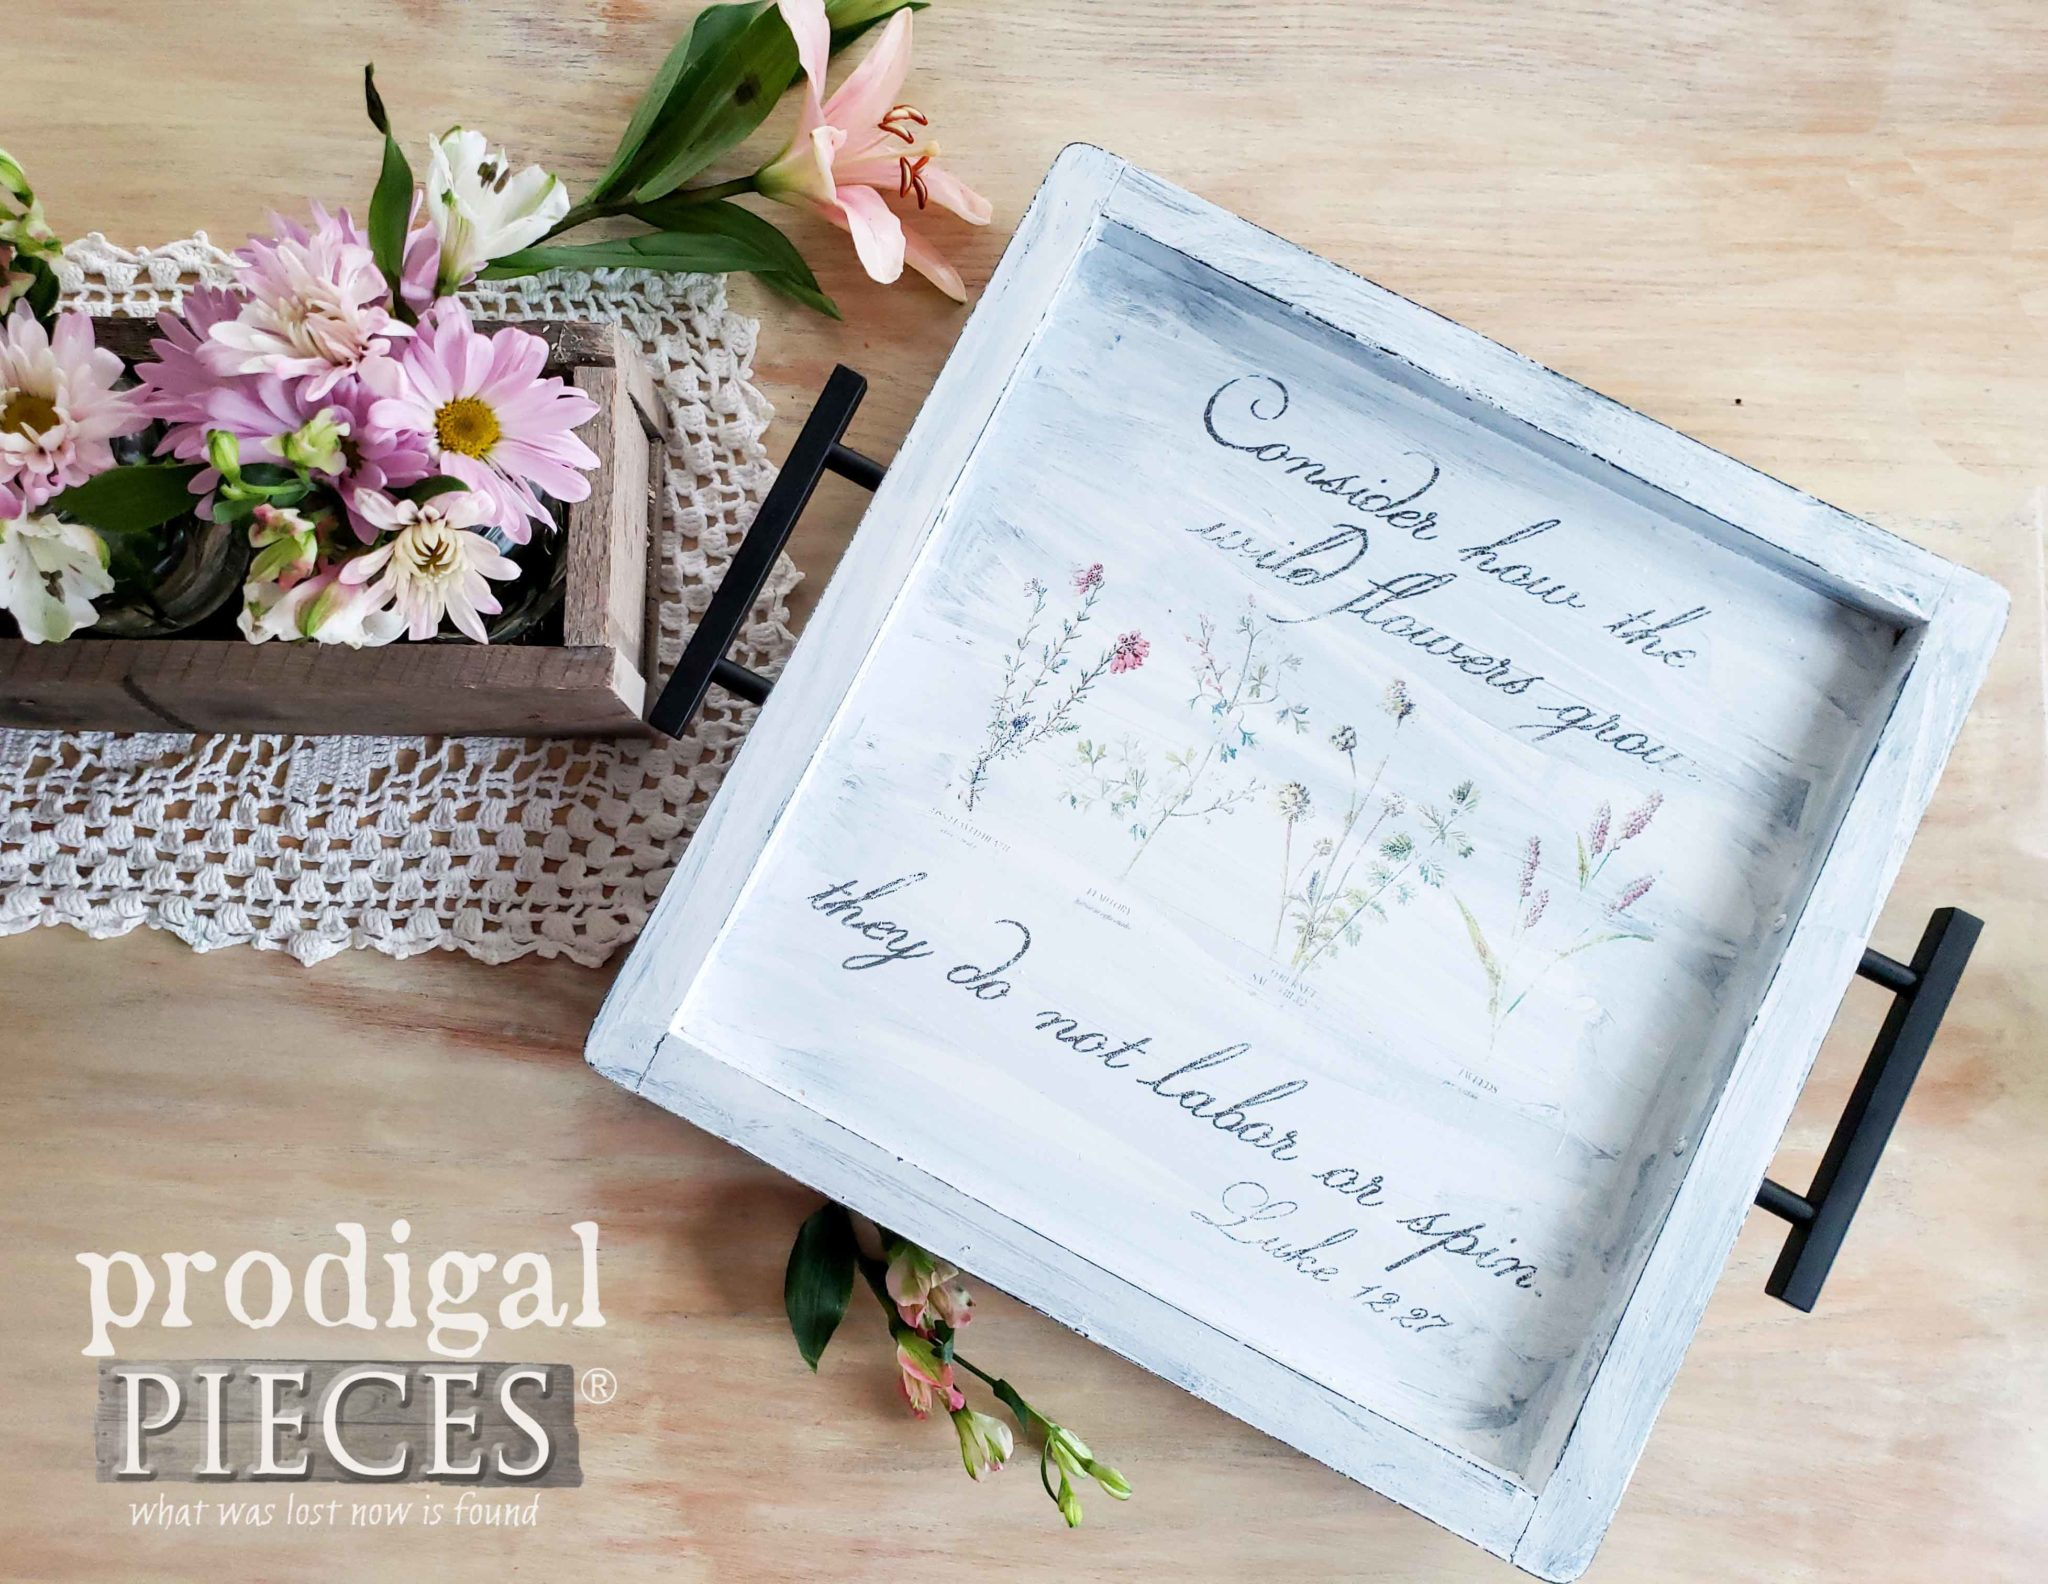 DIY Botanical Serving Tray Video tutorial on how to transfer an image by Larissa of Prodigal Pieces at prodigalpieces.com #prodigalpieces #diy #home #vintage #homedecor #farmhouse #videos